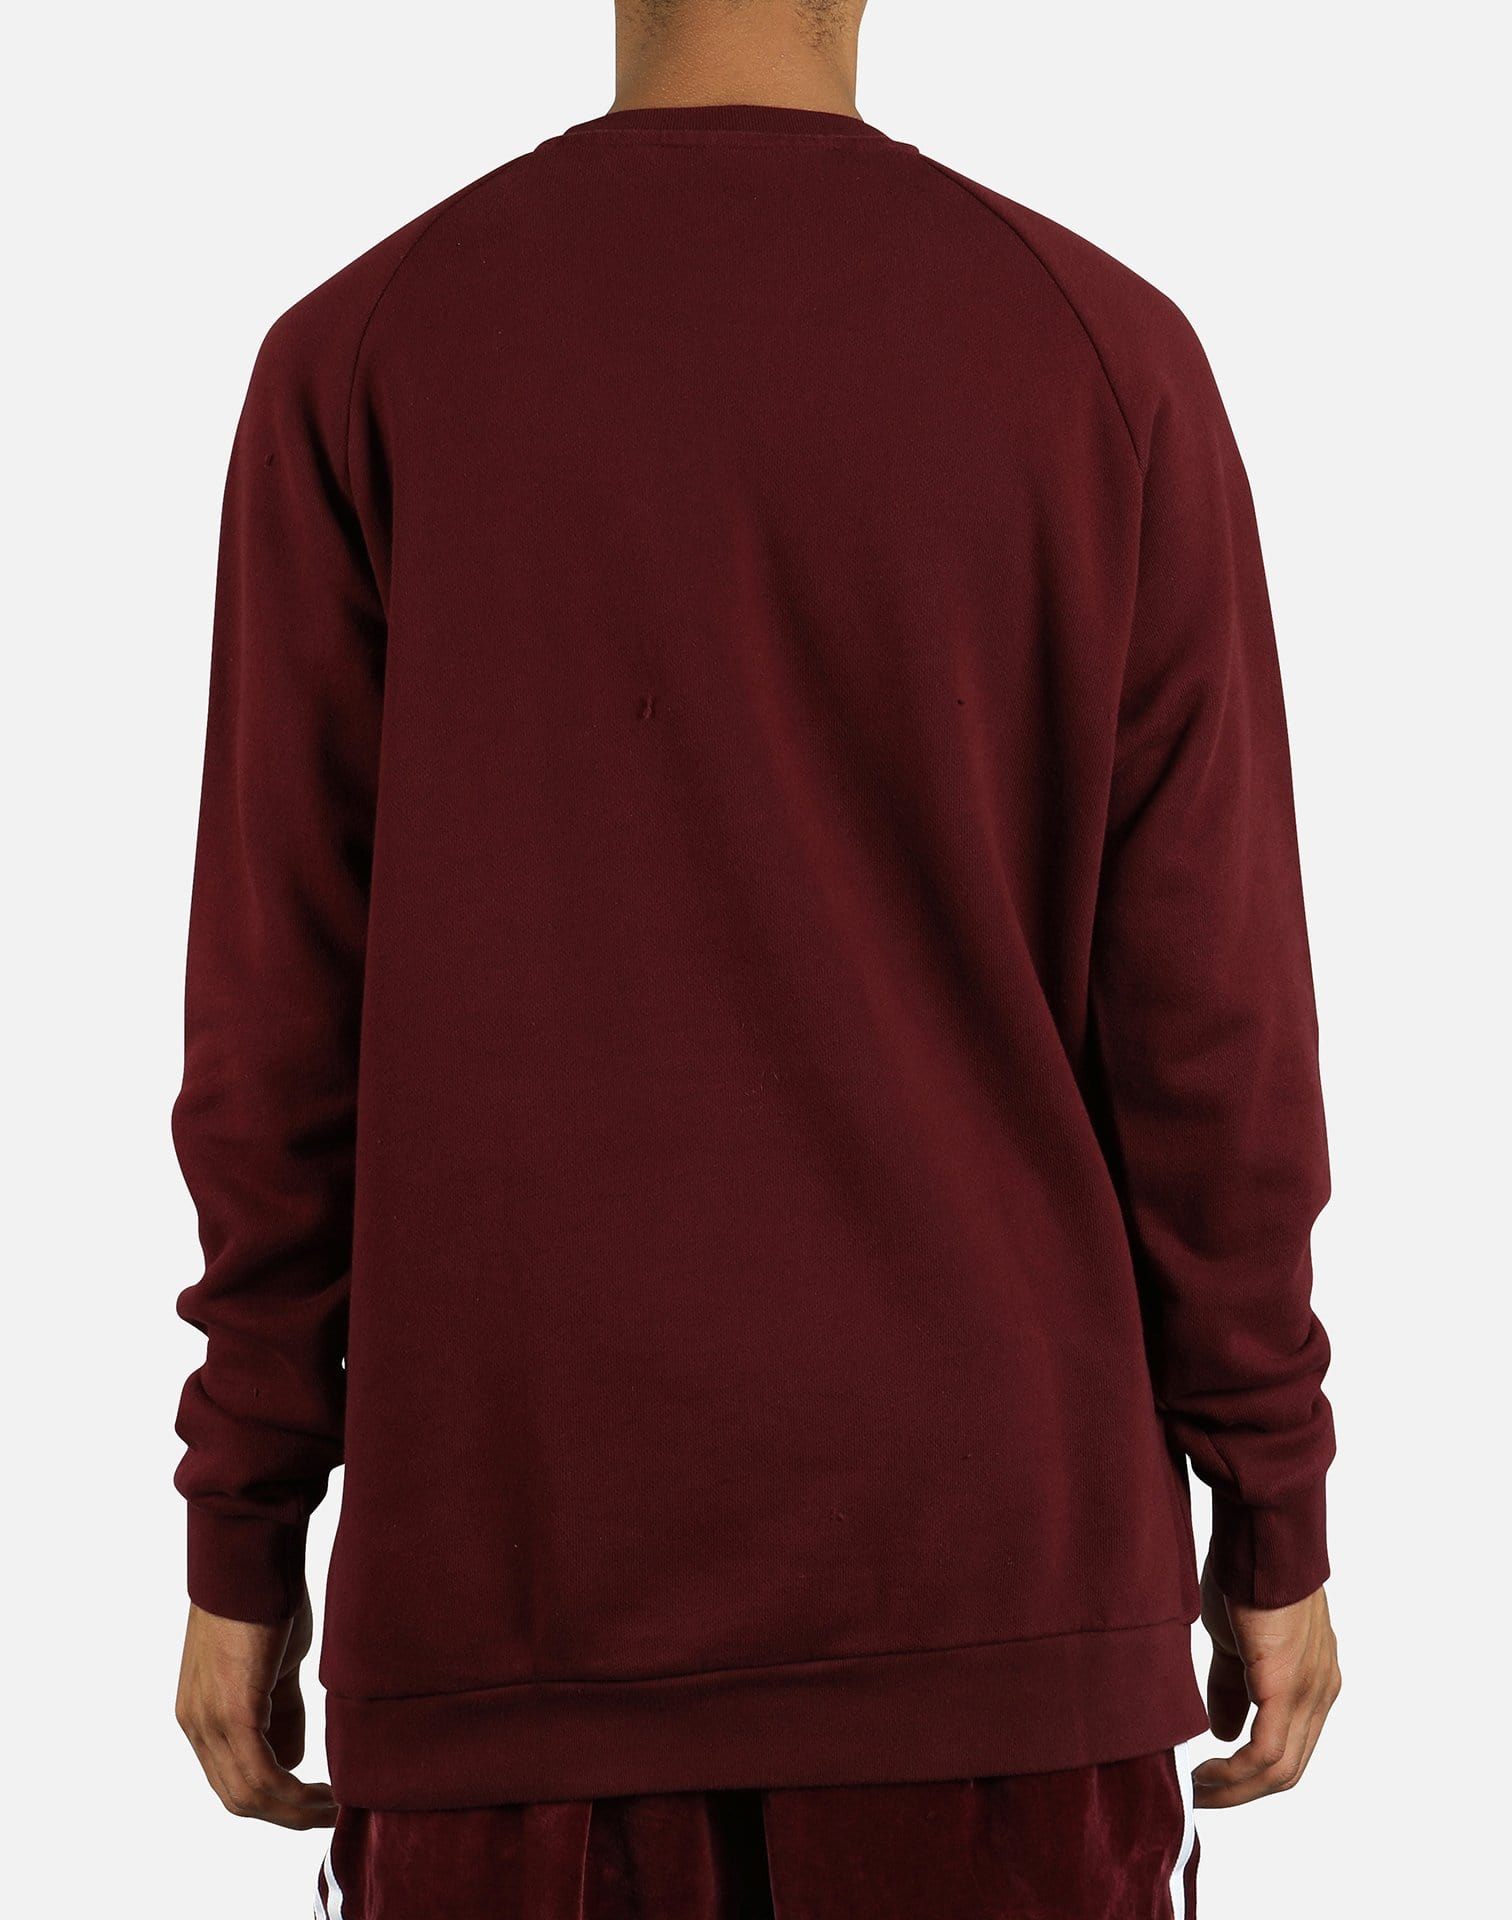 adidas Men's Trefoil Warmup Crewneck Sweatshirt